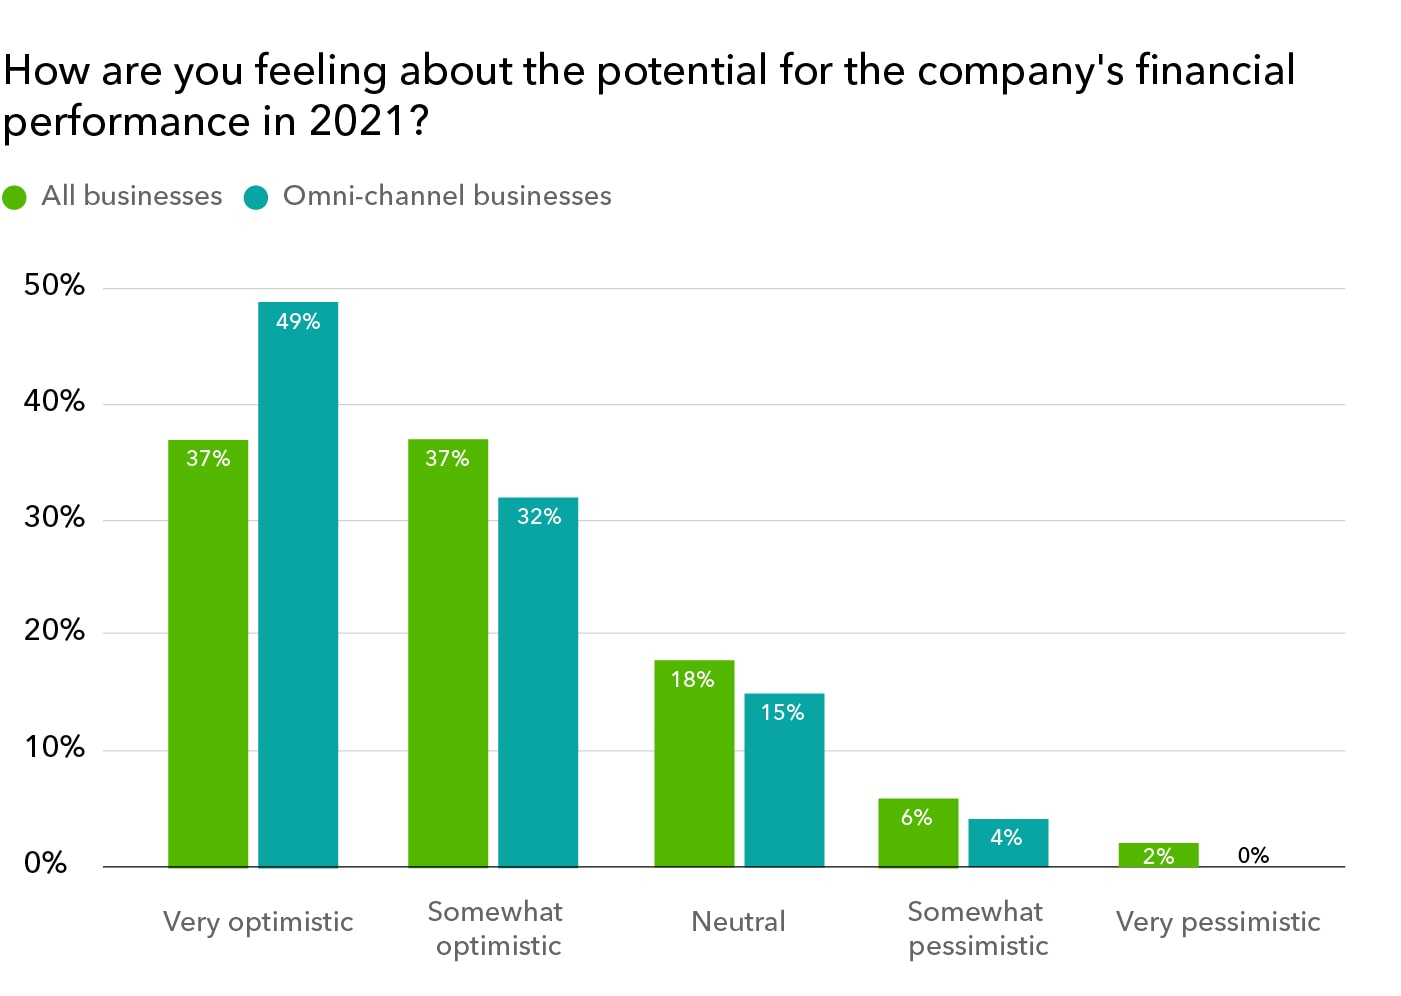 Business owners' feelings on profit potential in 2021